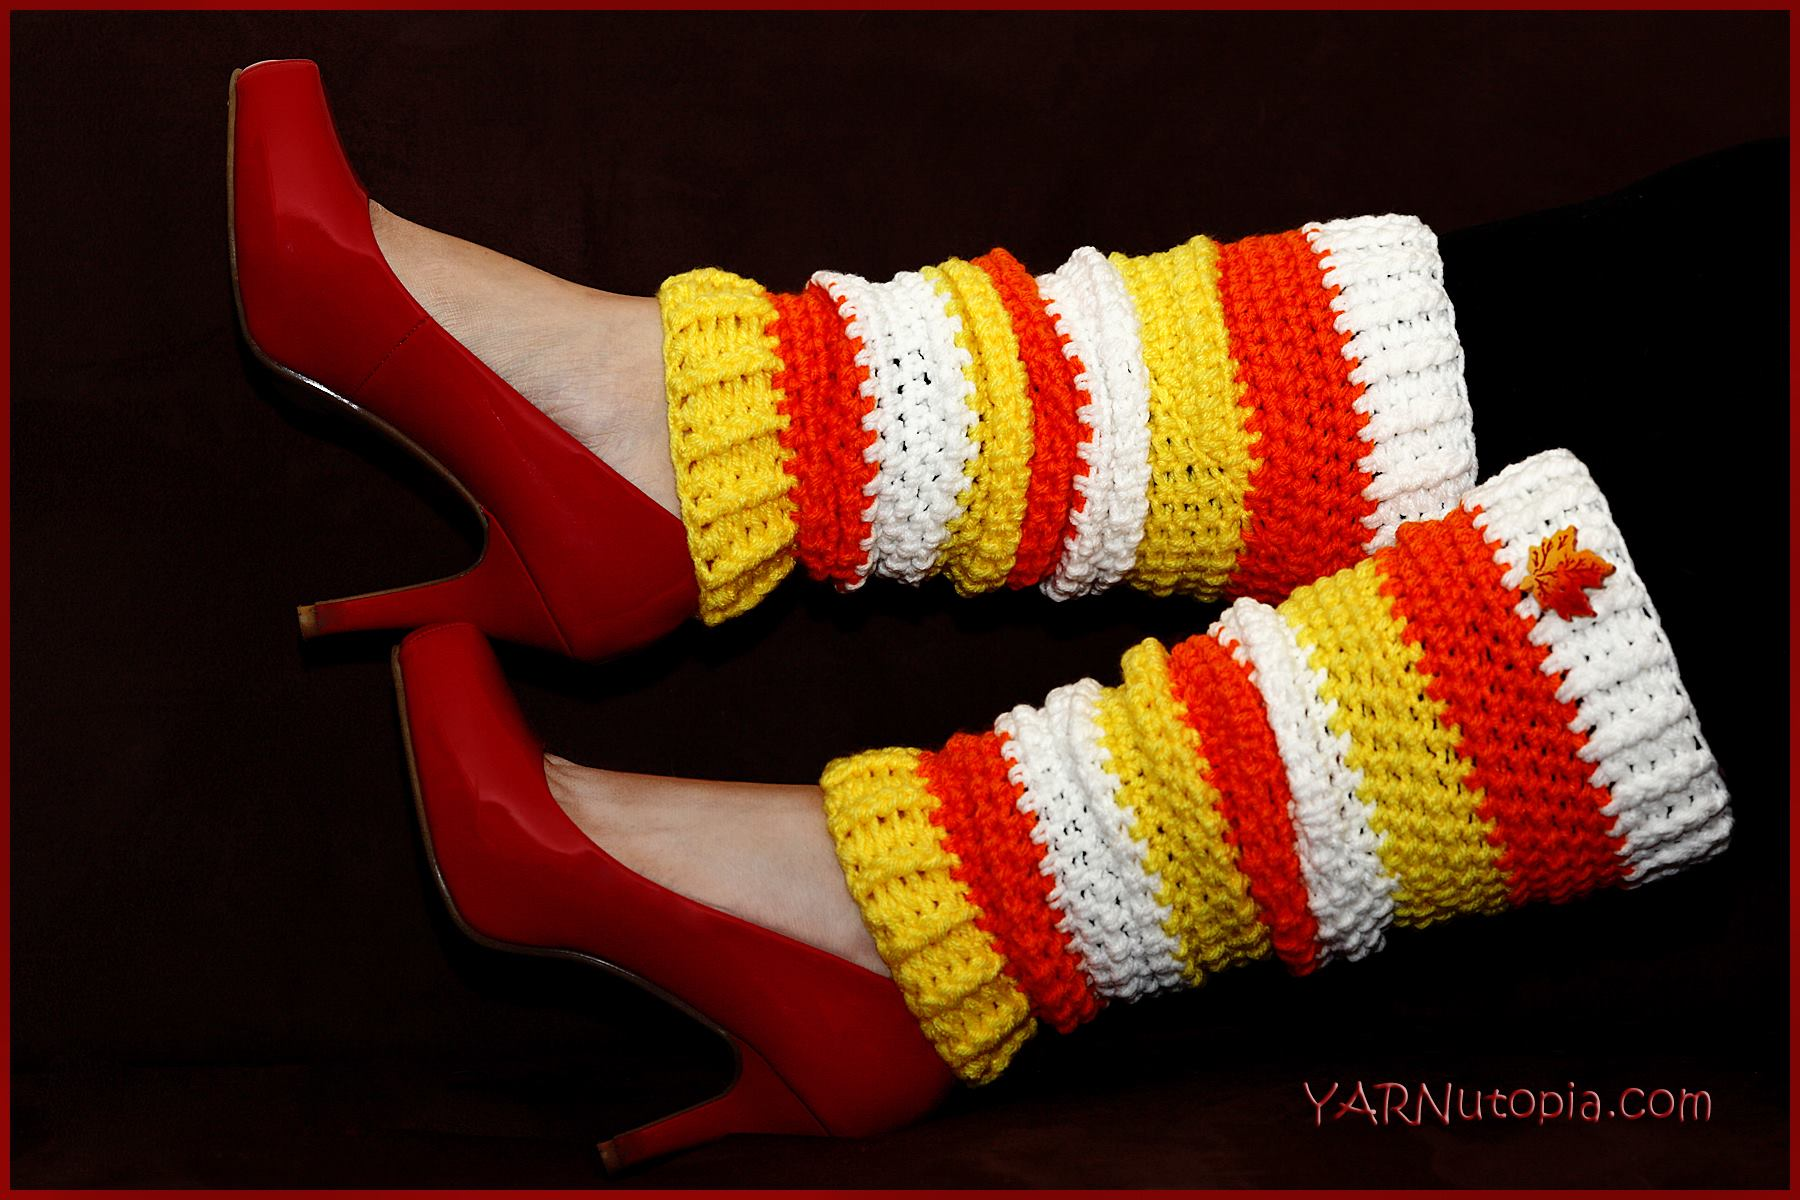 Crochet Tutorial: Candy Corn Leg Warmers « YARNutopia by Nadia Fuad